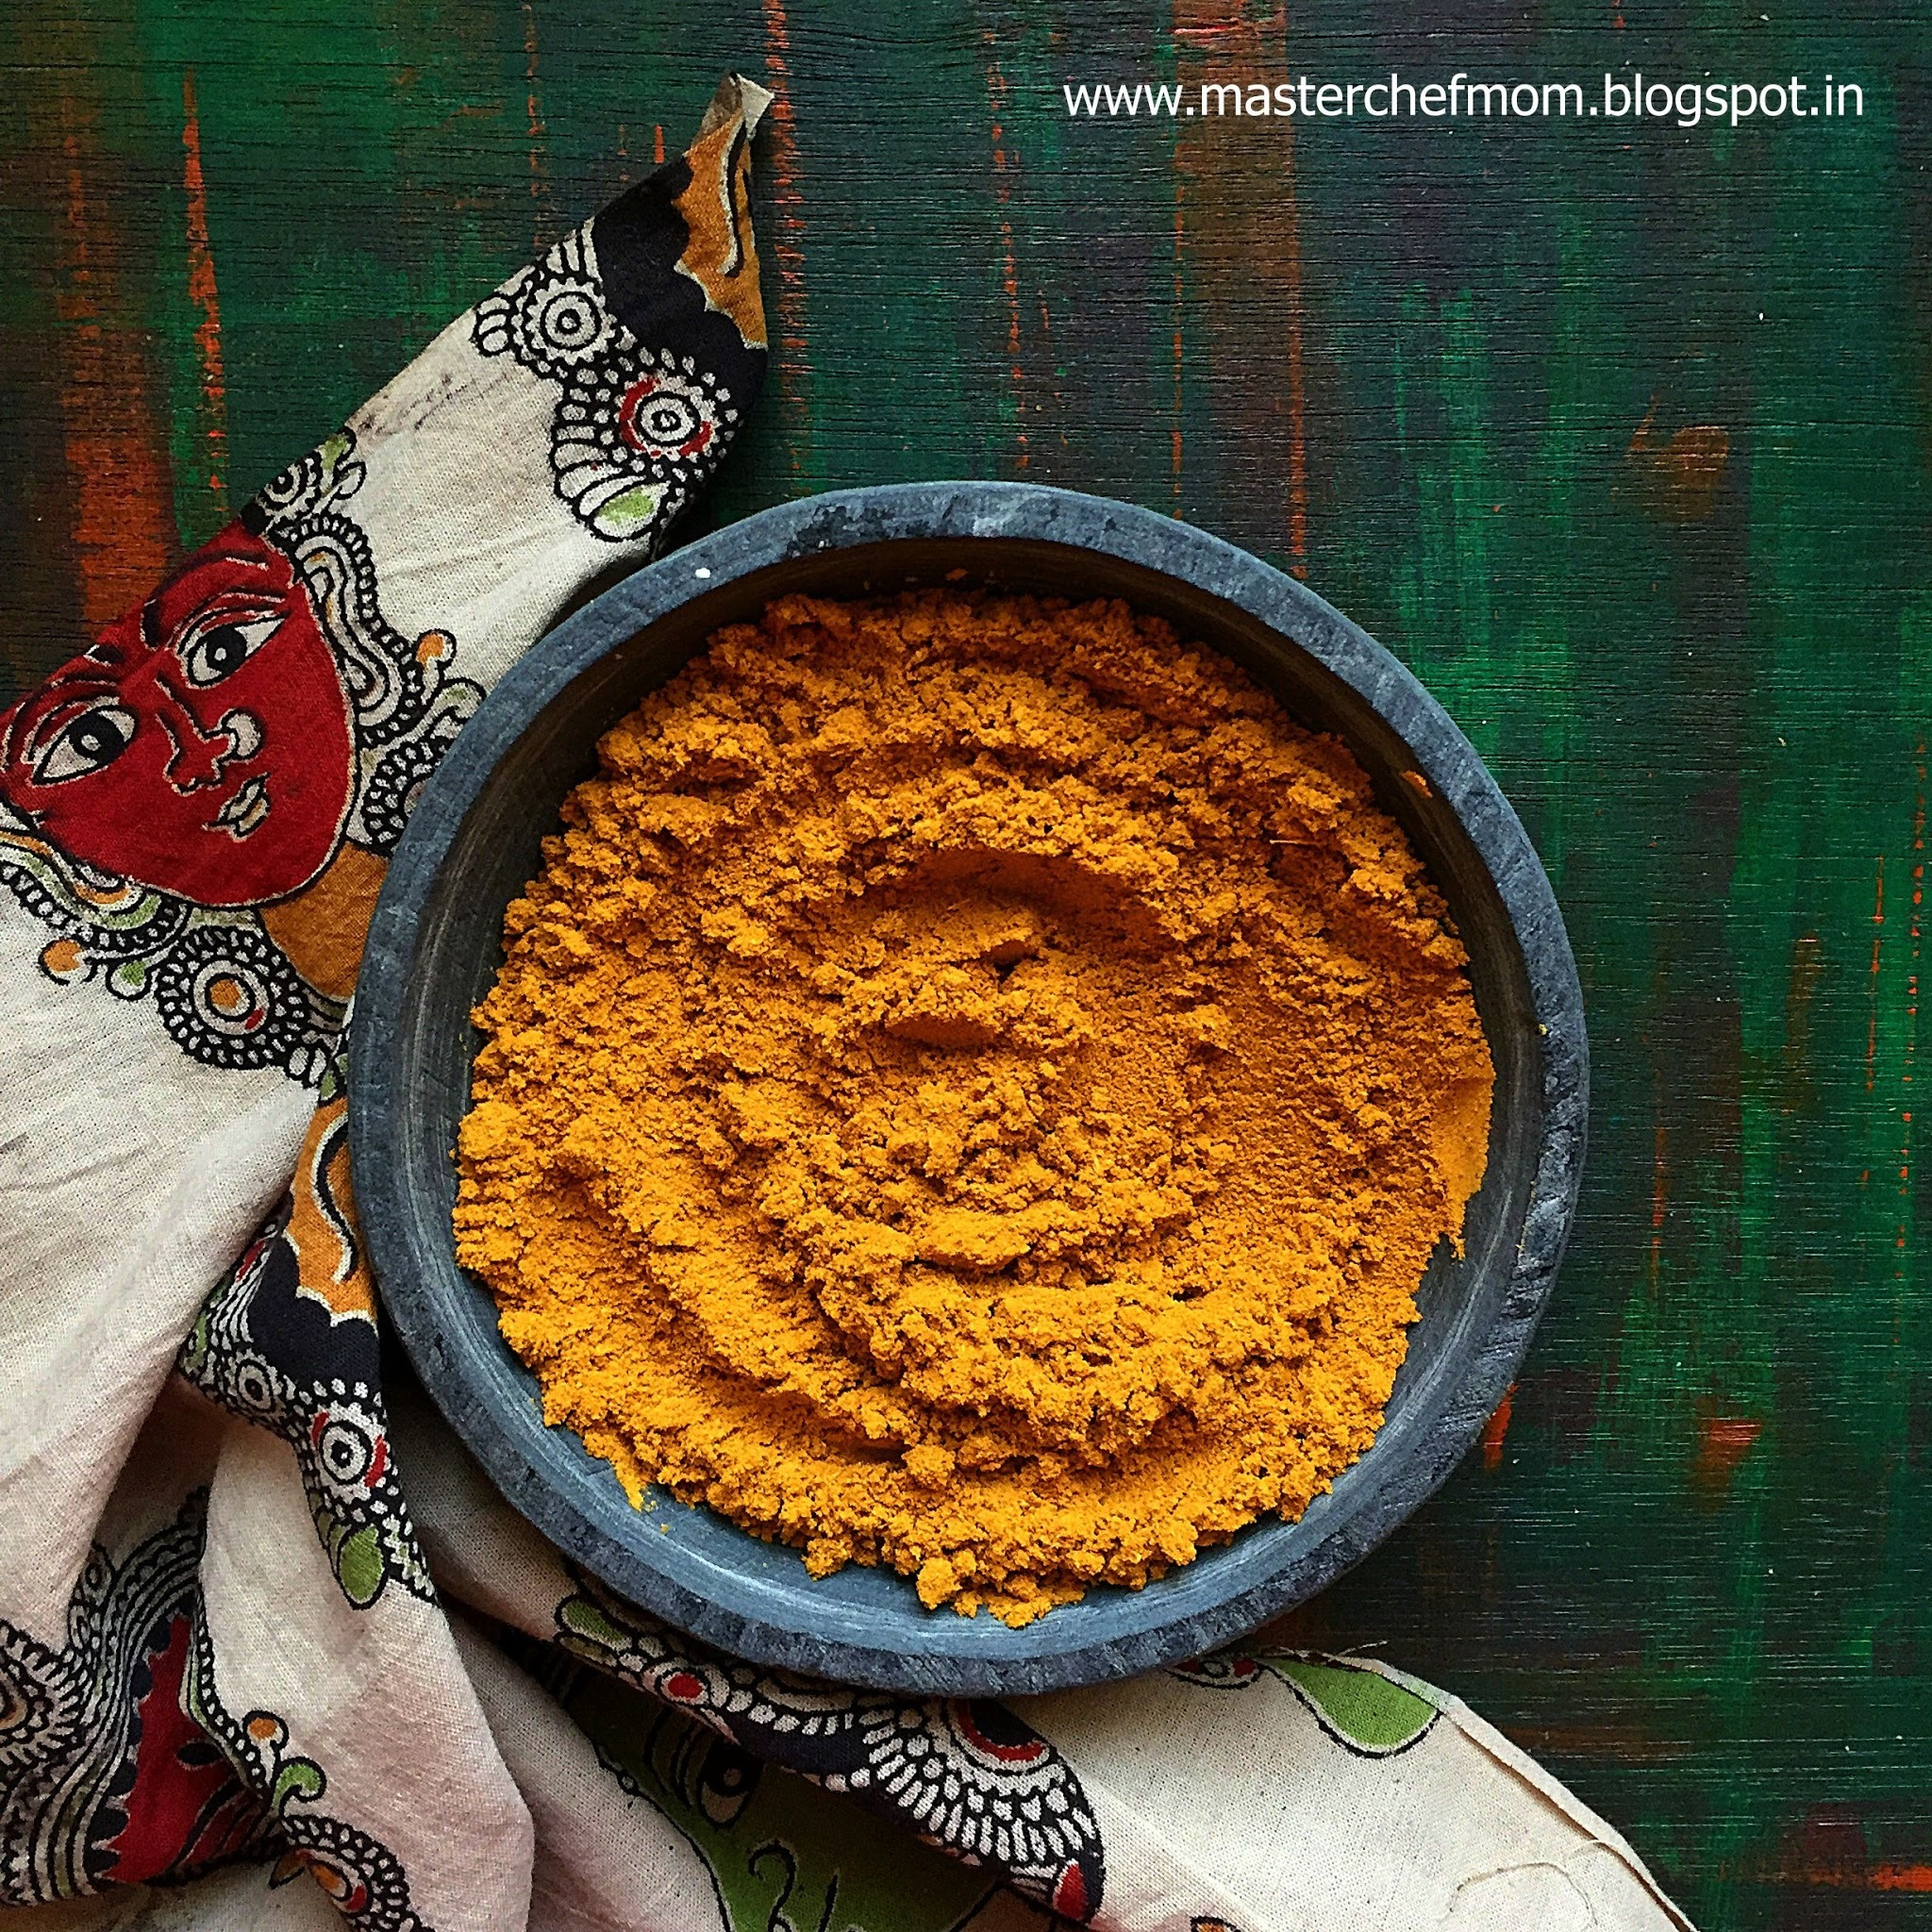 Sambar Podi | Authentic Tamil Nadu Style Sambar Powder Recipe | Gluten Free and Vegan Recipe